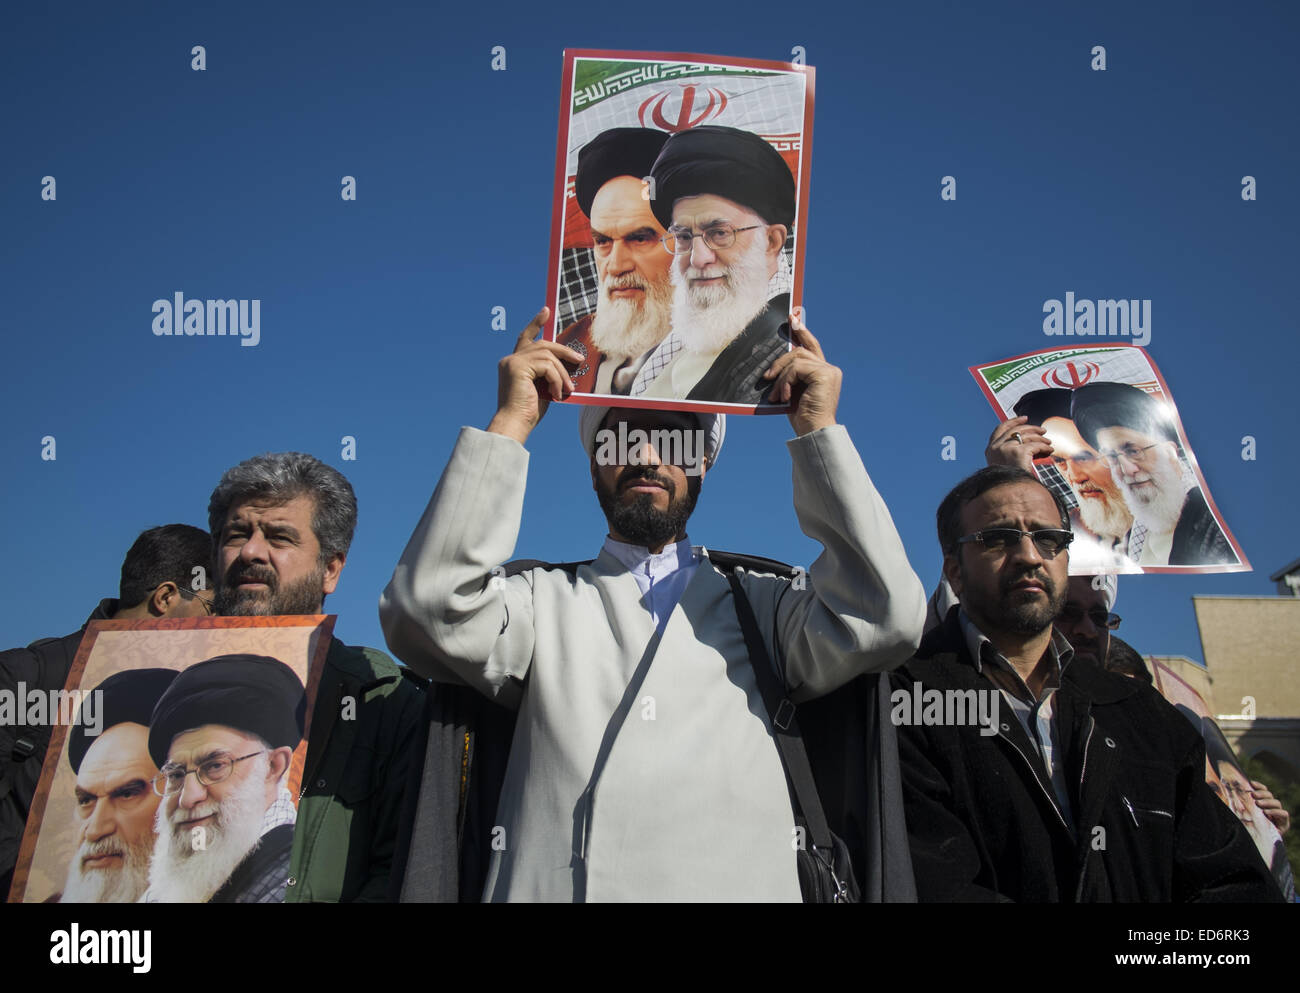 Qom, Iran. 29th Dec, 2014. December 30, 2014 - Qom, Iran - An Iranian cleric and men hold posters with portraits - Stock Image